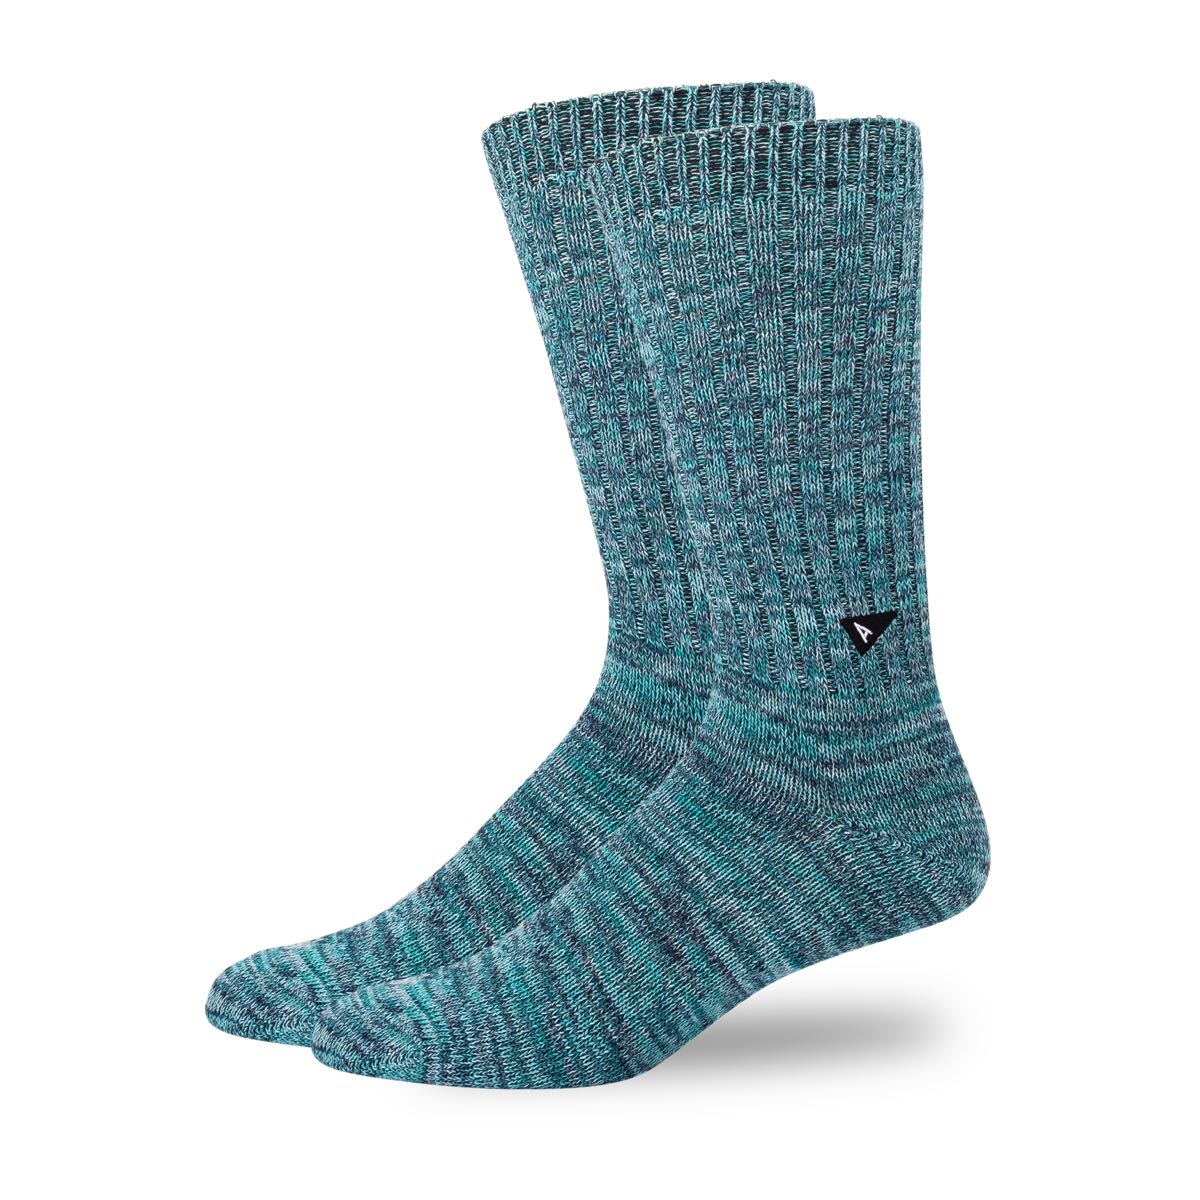 Arvin Goods Casual Twisted Socks - Teal image 1